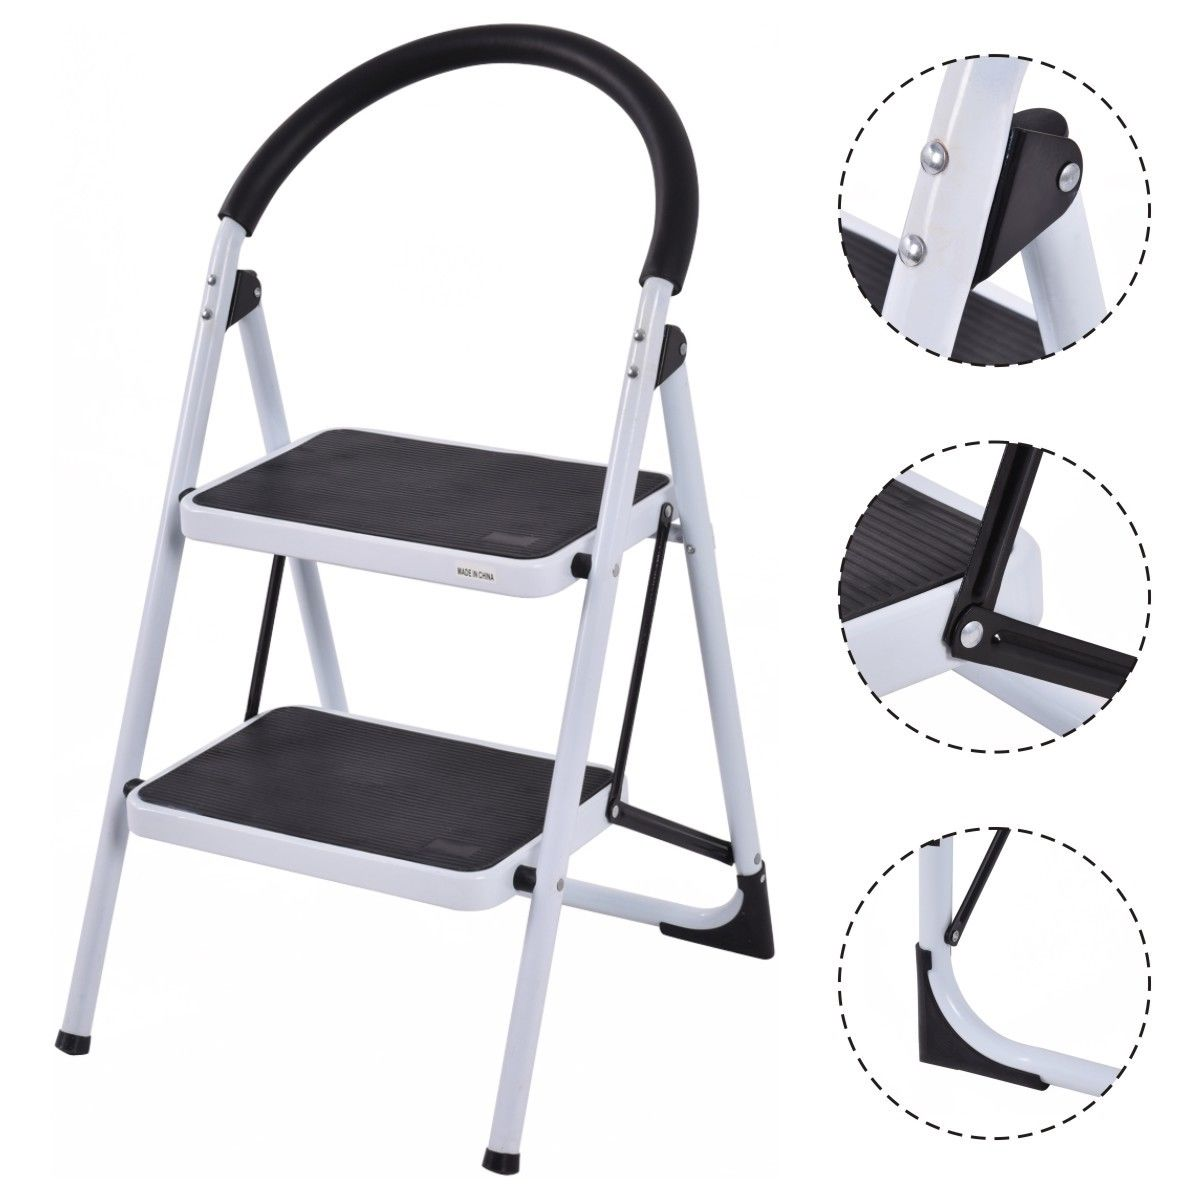 Rubbermaid 2 Step Stool White Get Quotations Rubbermaid